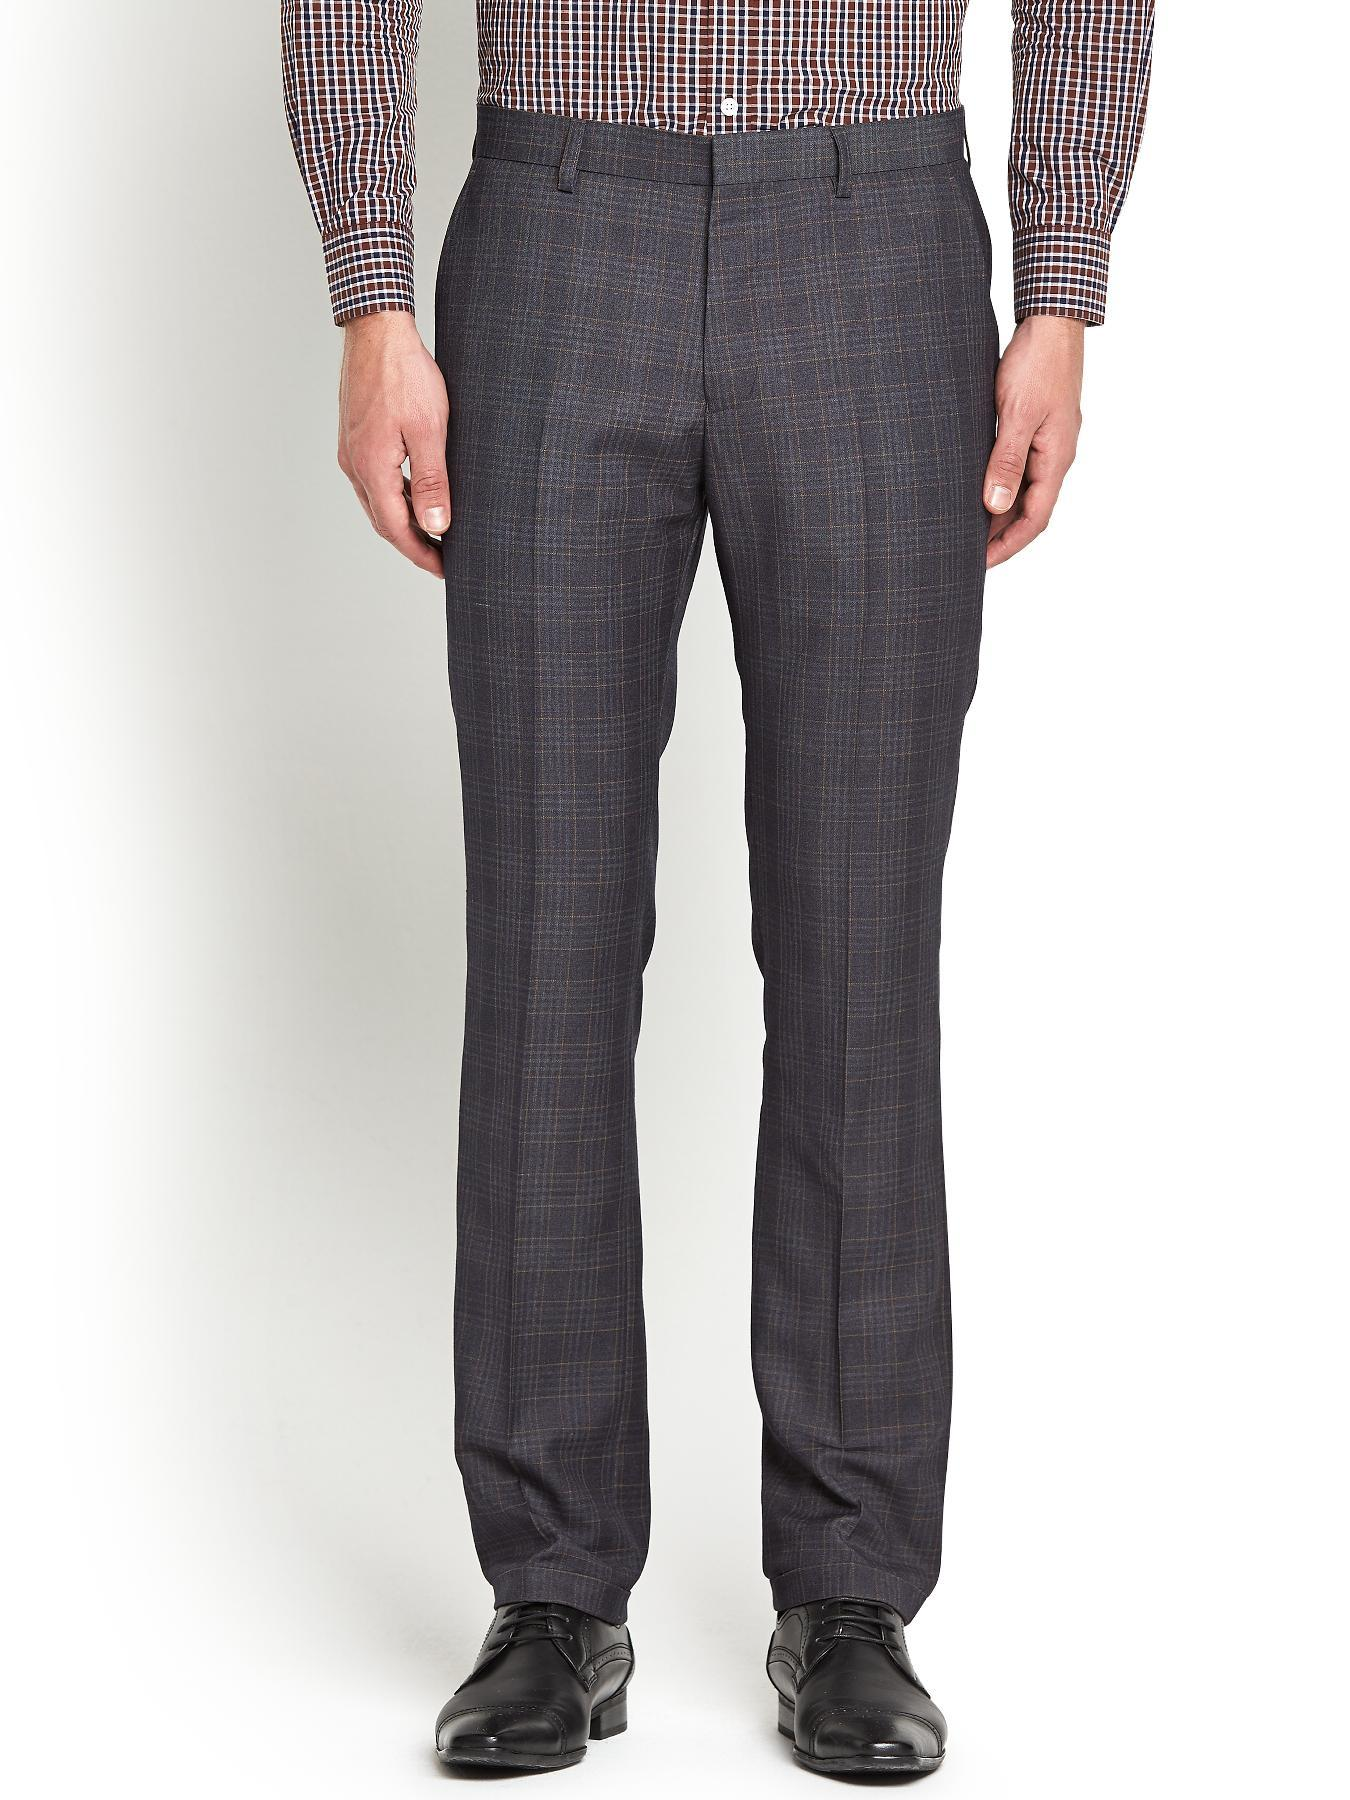 Mens Suit Trousers - Brown Check, Brown